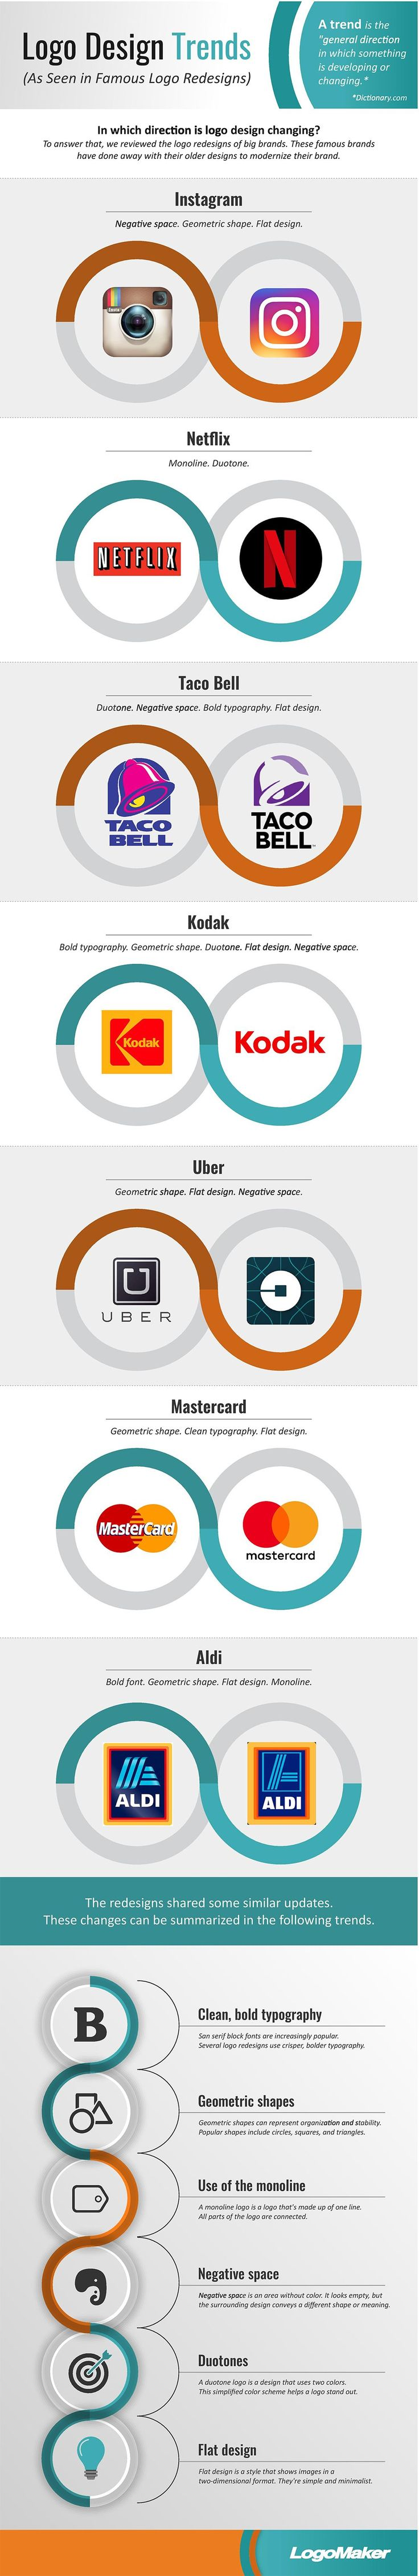 Best Logo Design Trends Ideas On Pinterest Logo Inspiration - 10 famous logos that changed in 2016